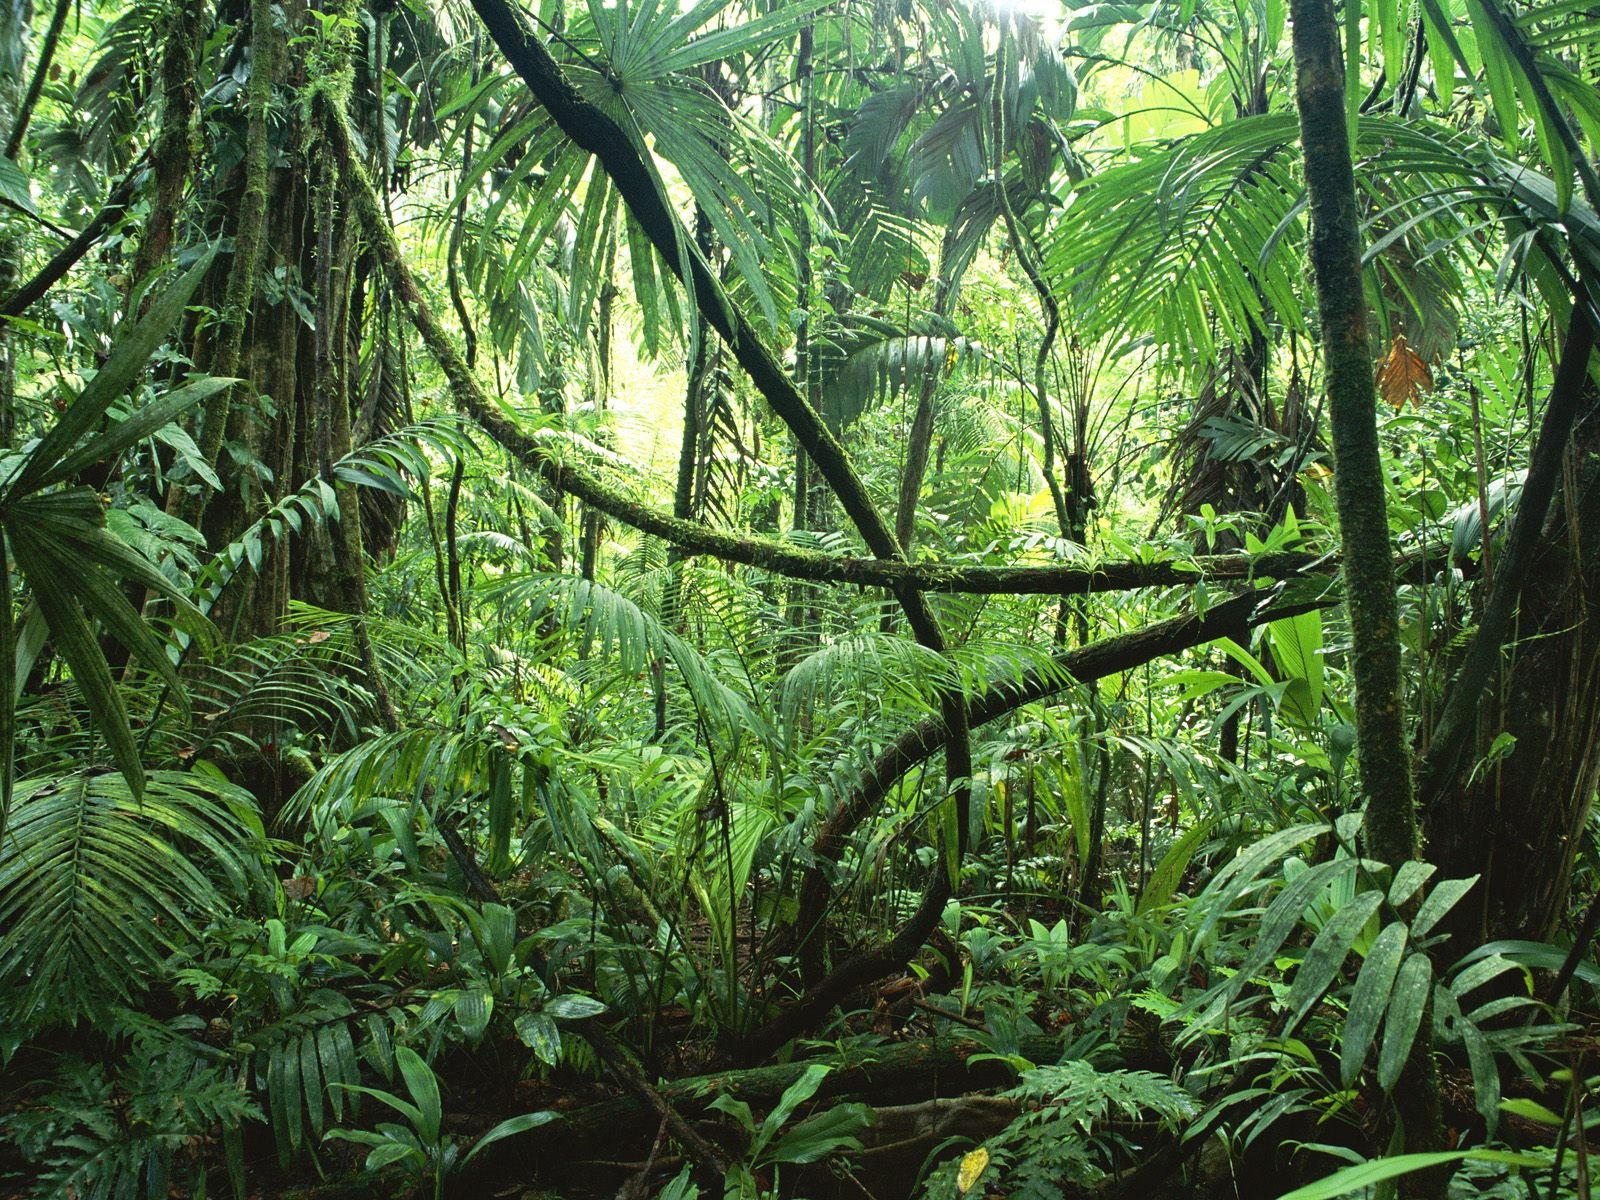 http://banana.by/uploads/posts/1222369678_lianas_in_interior_of_lowland_rainforest_la_selva_biological_station_costa_rica.jpg